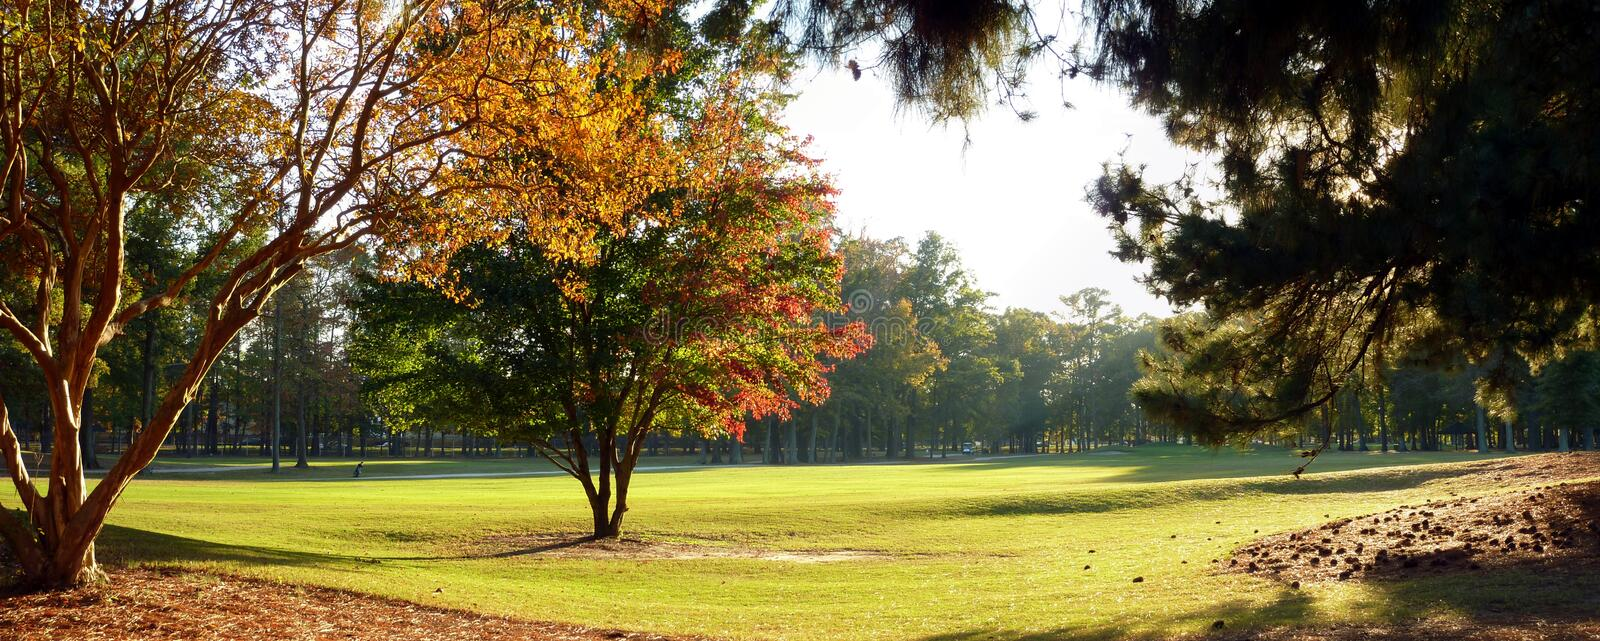 Golf course late evening royalty free stock image